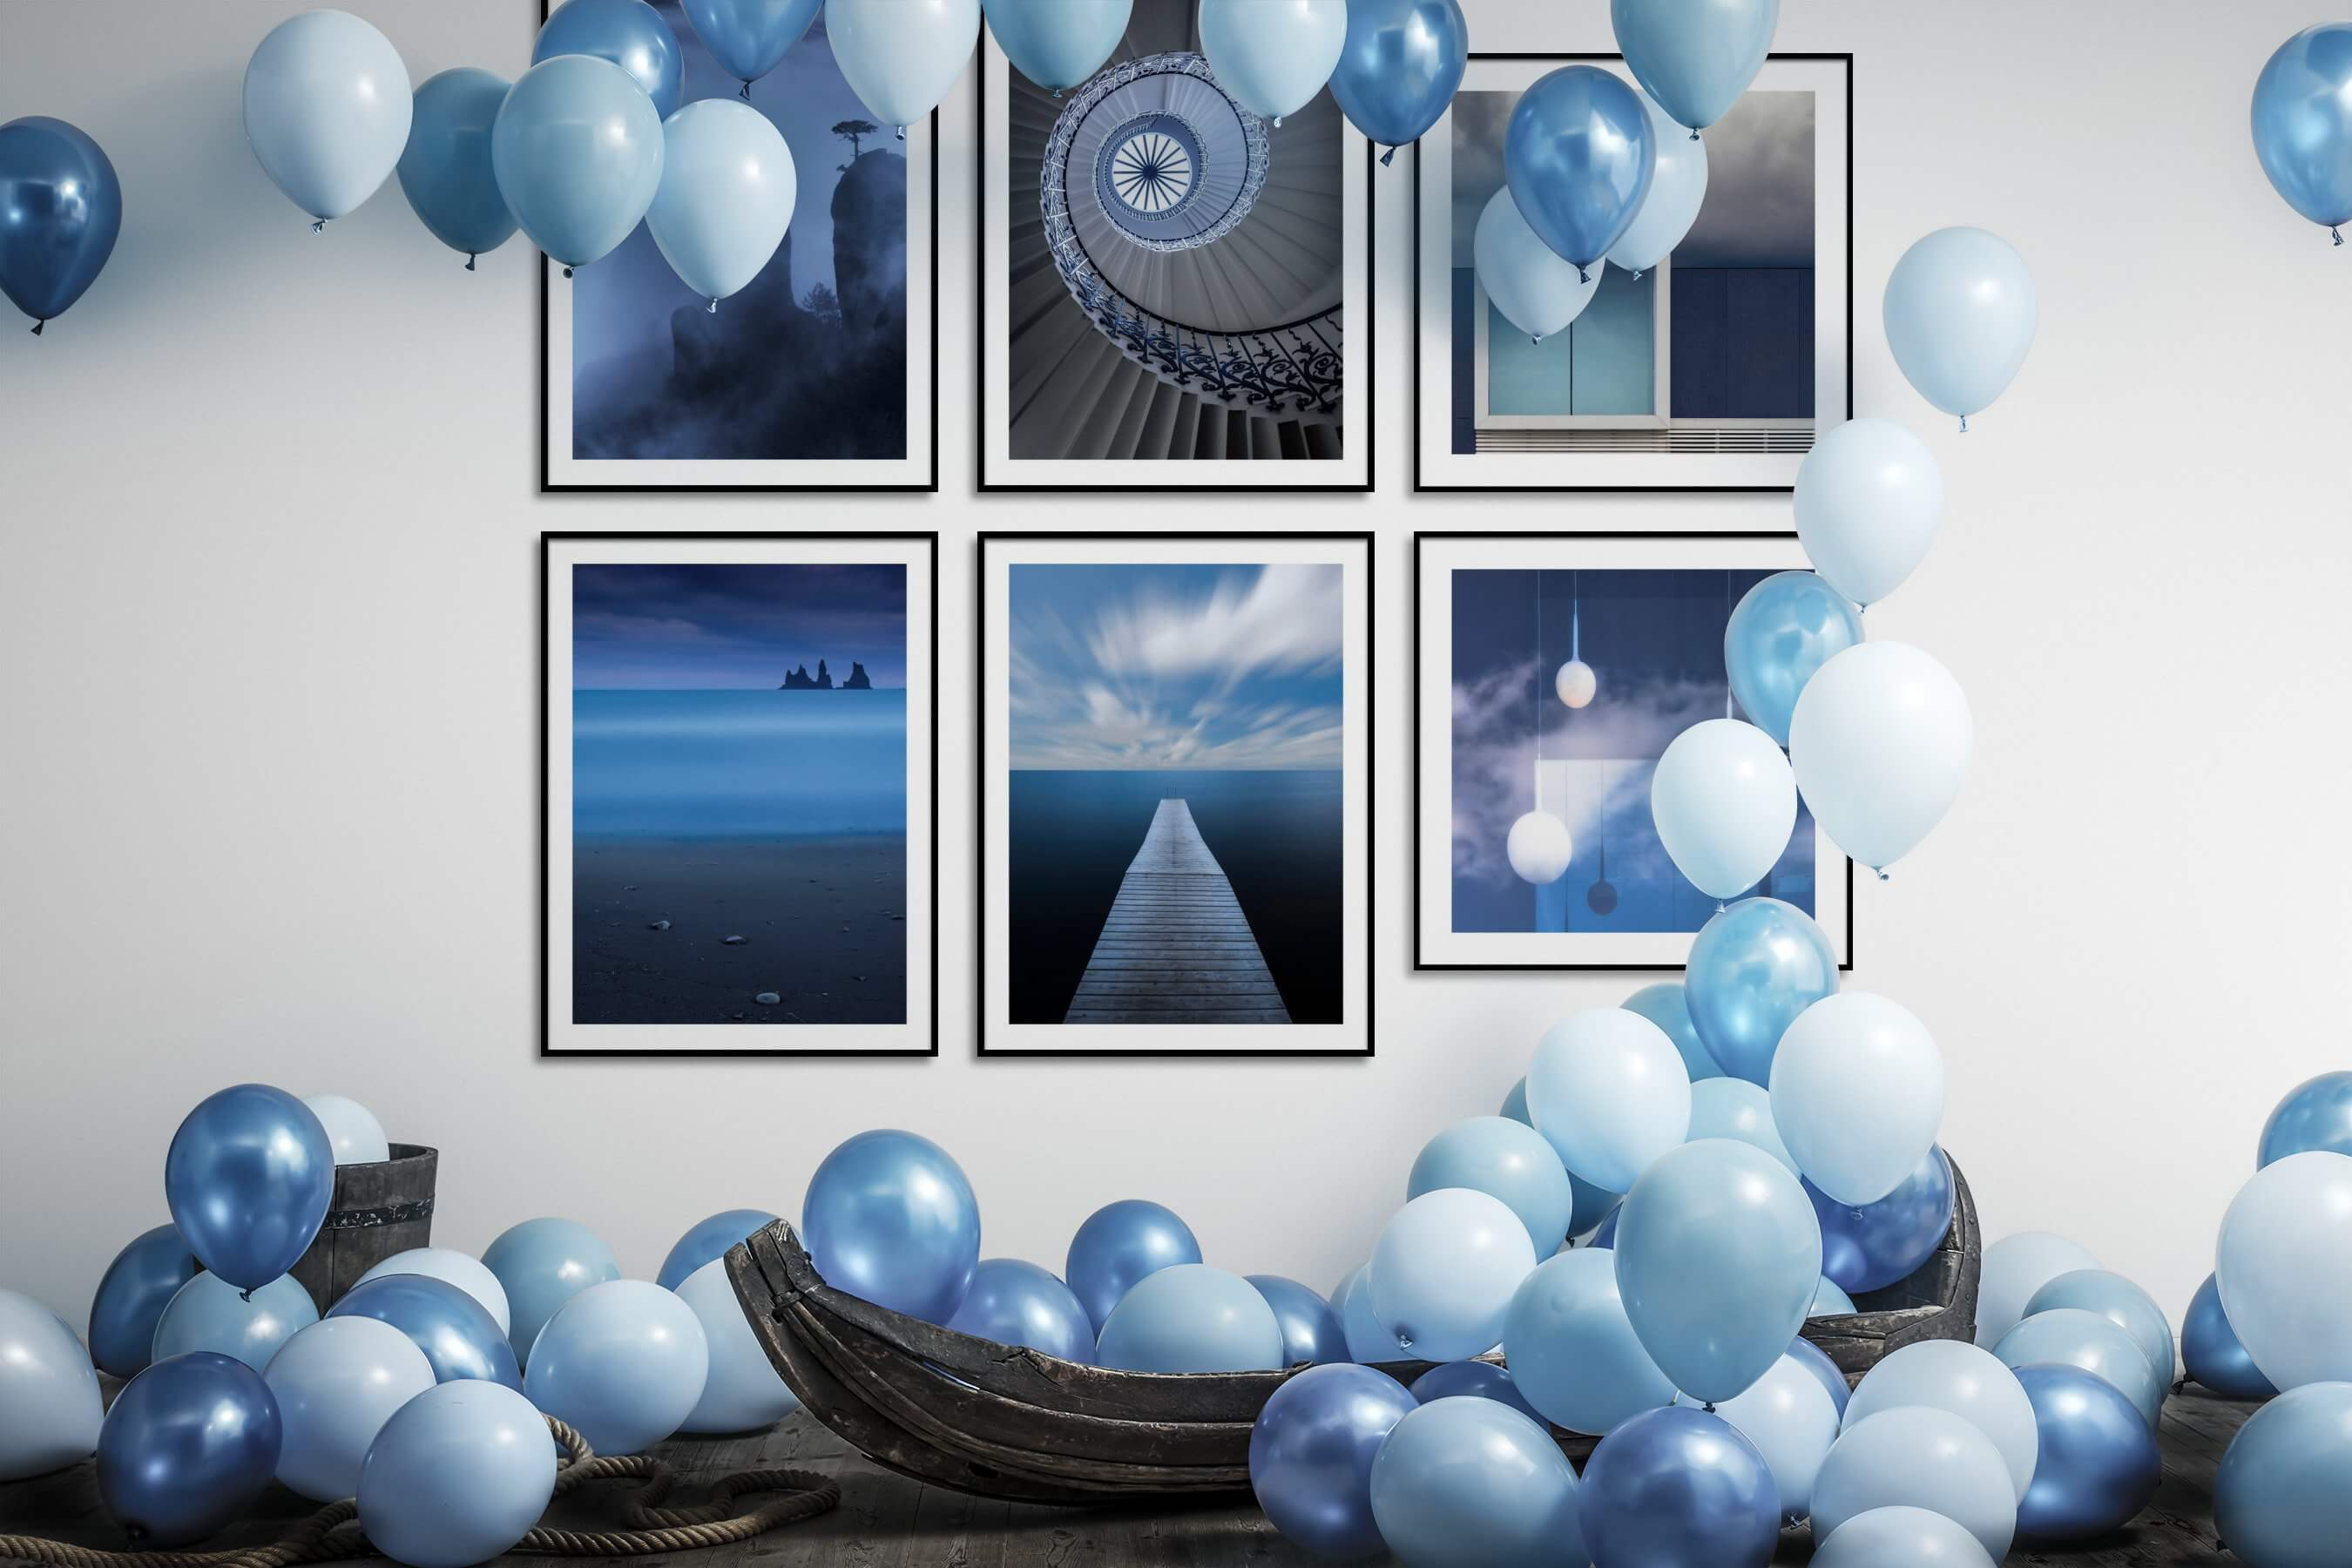 Gallery wall idea with six framed pictures arranged on a wall depicting Nature, For the Moderate, Beach & Water, and Mindfulness